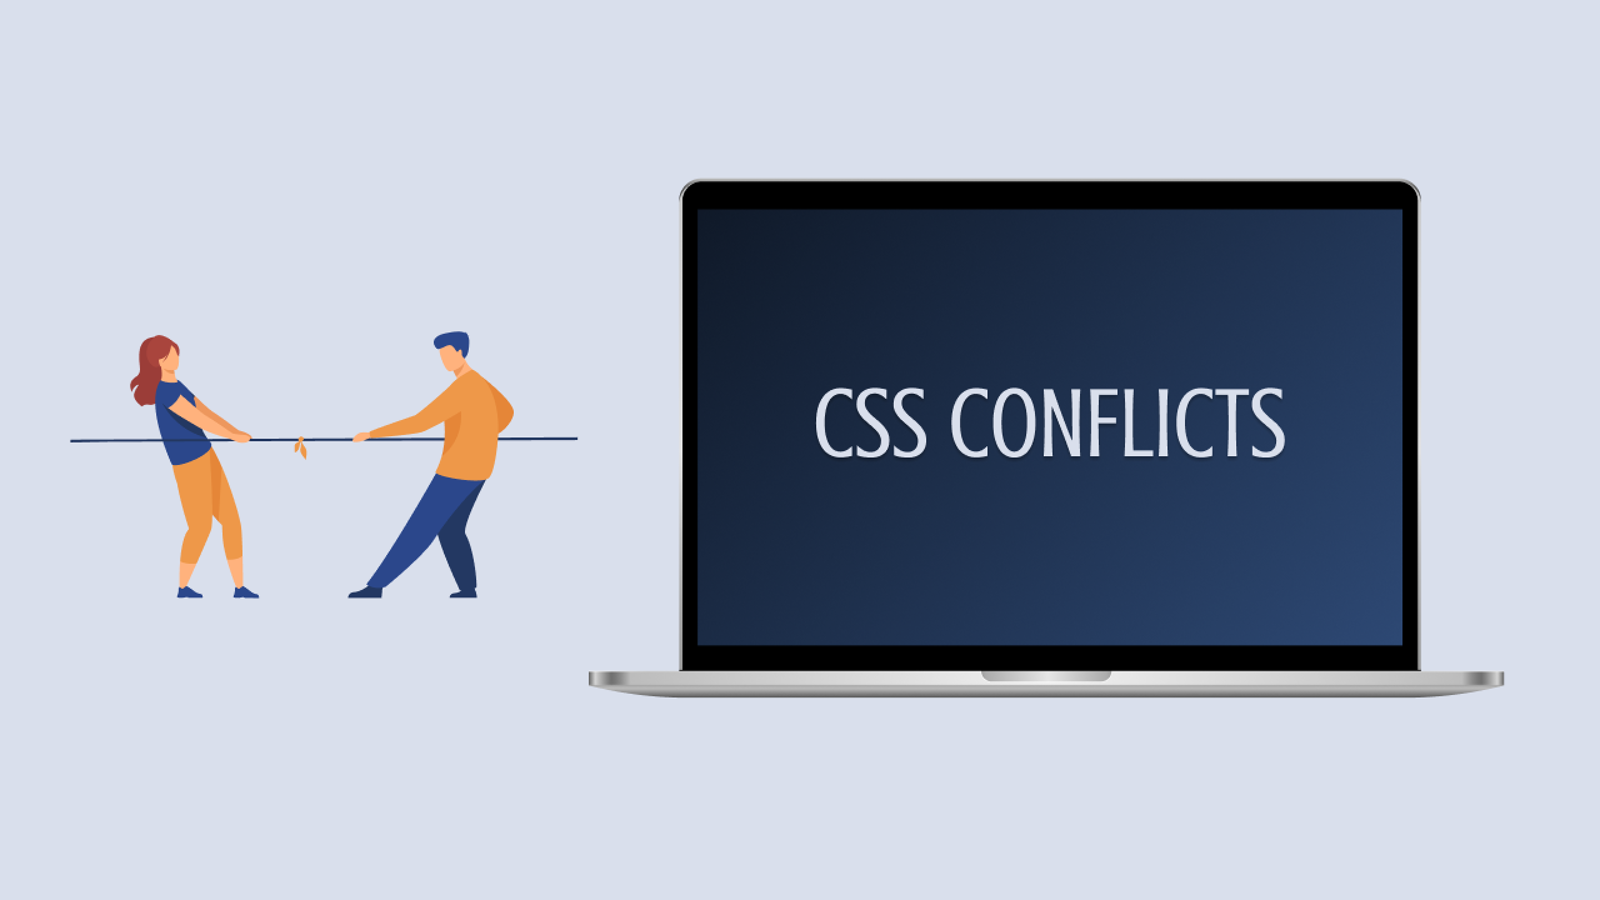 CSS Conflicts